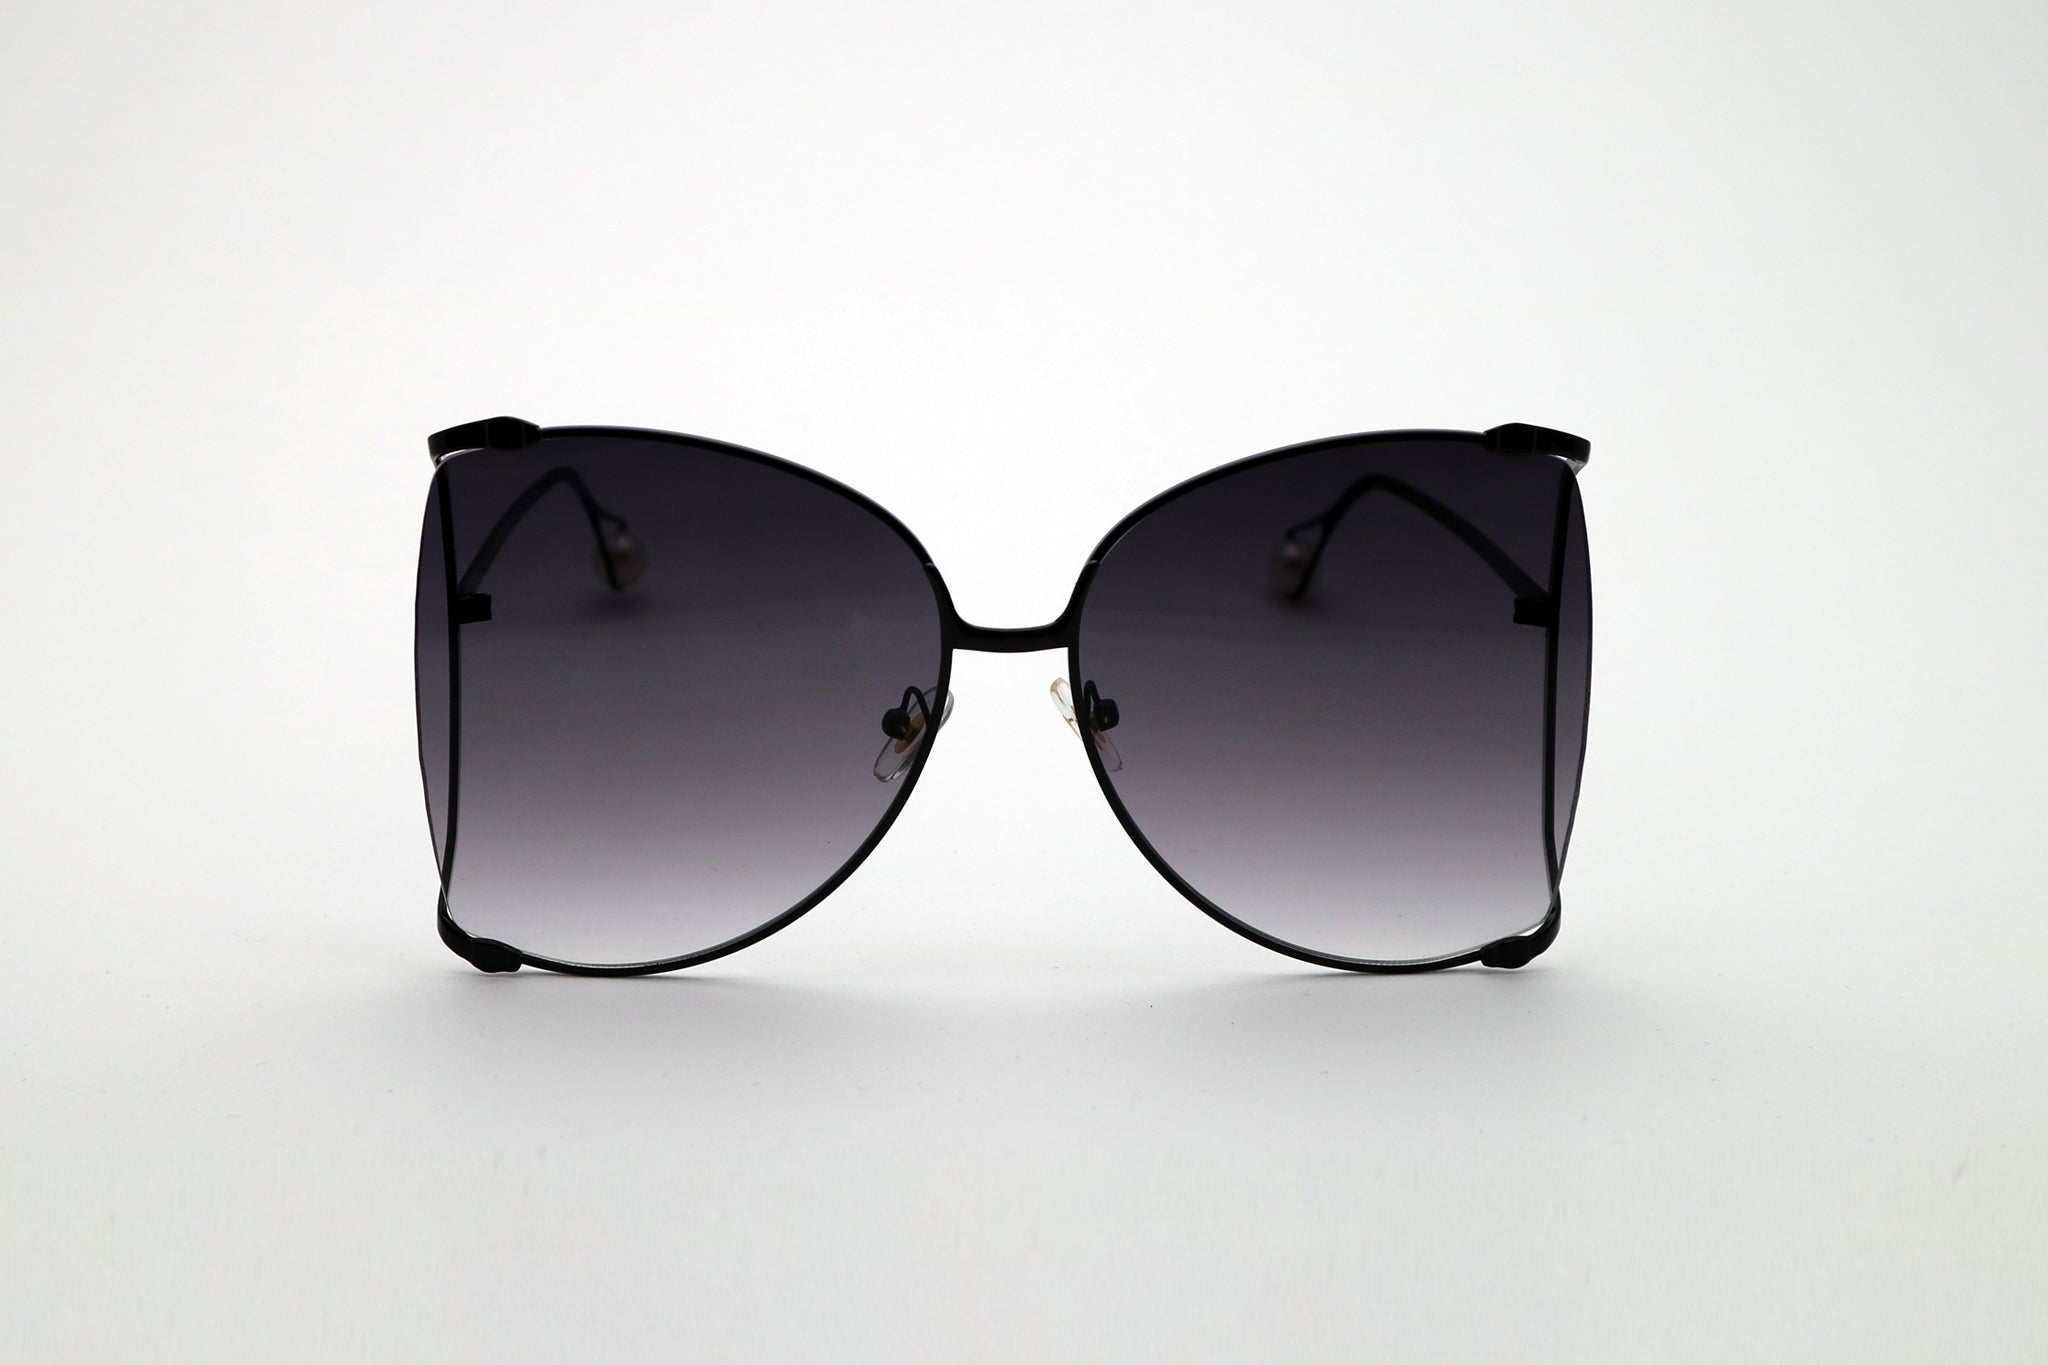 2c9b2a251cb0b Queens Love - Woodstock Wonderland Sunglasses - Black Black - Queen ...